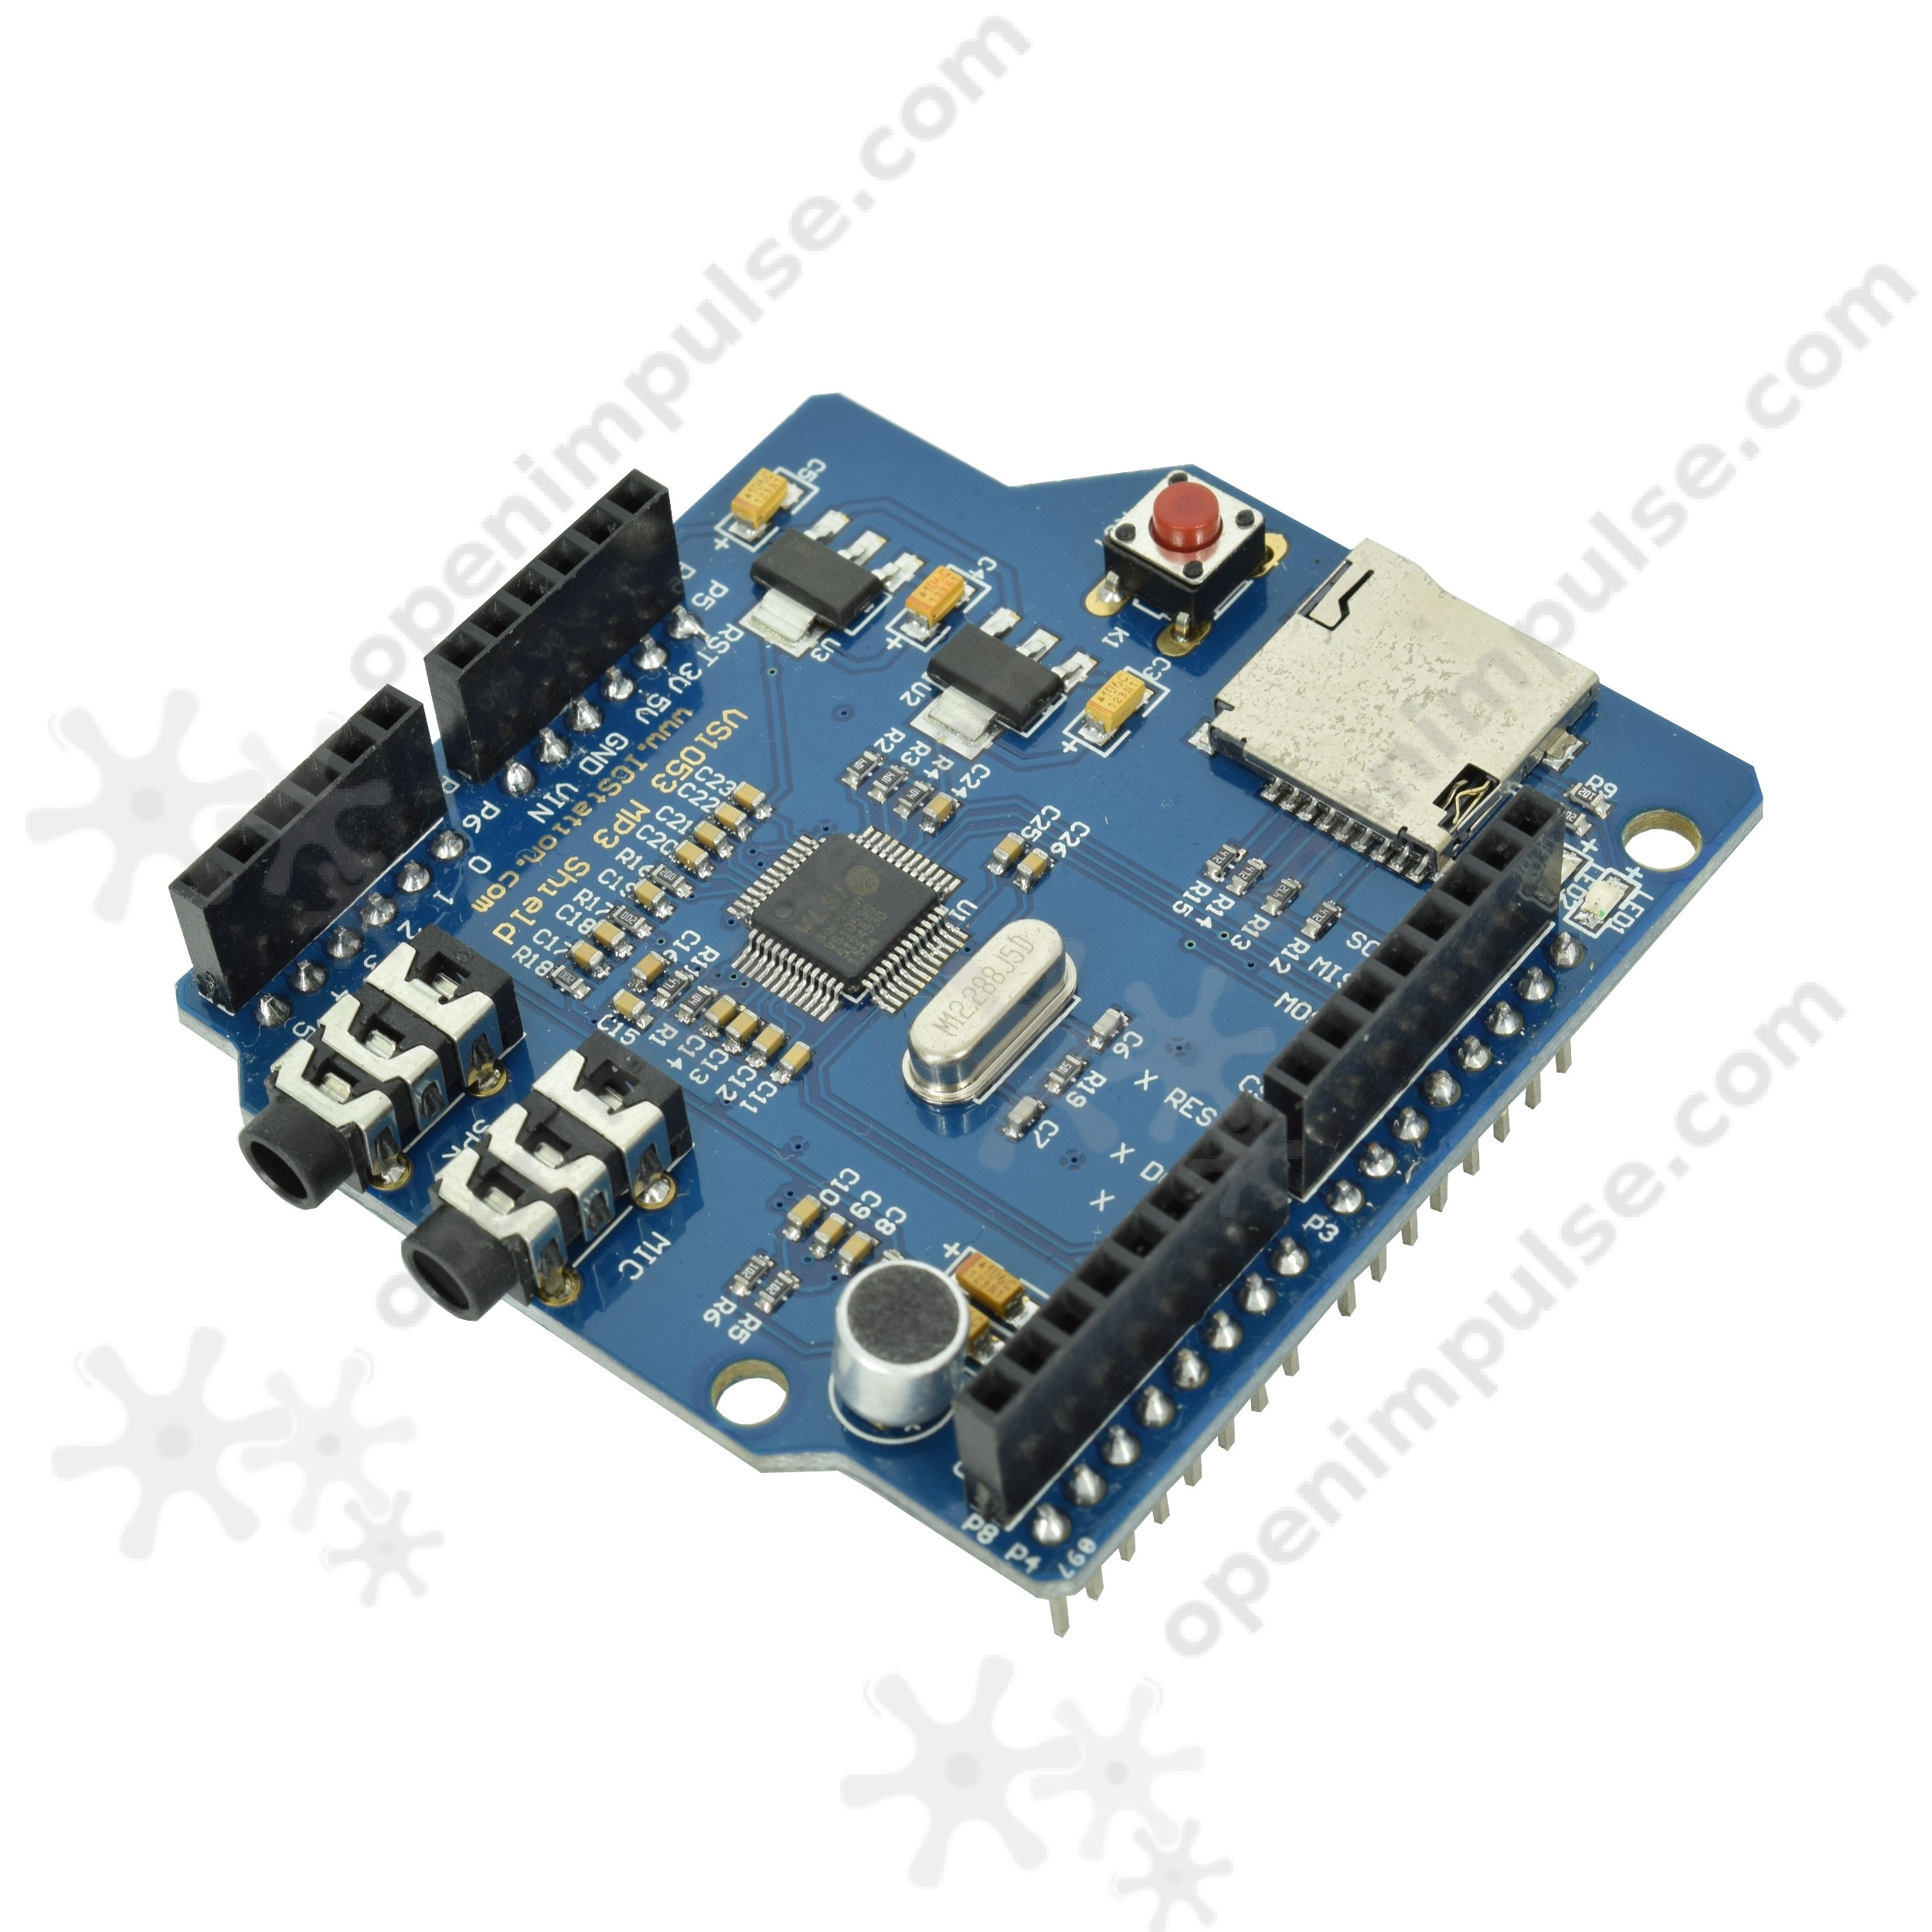 VS1053 Shield for Arduino (with SD Card Slot and Microphone) | Open